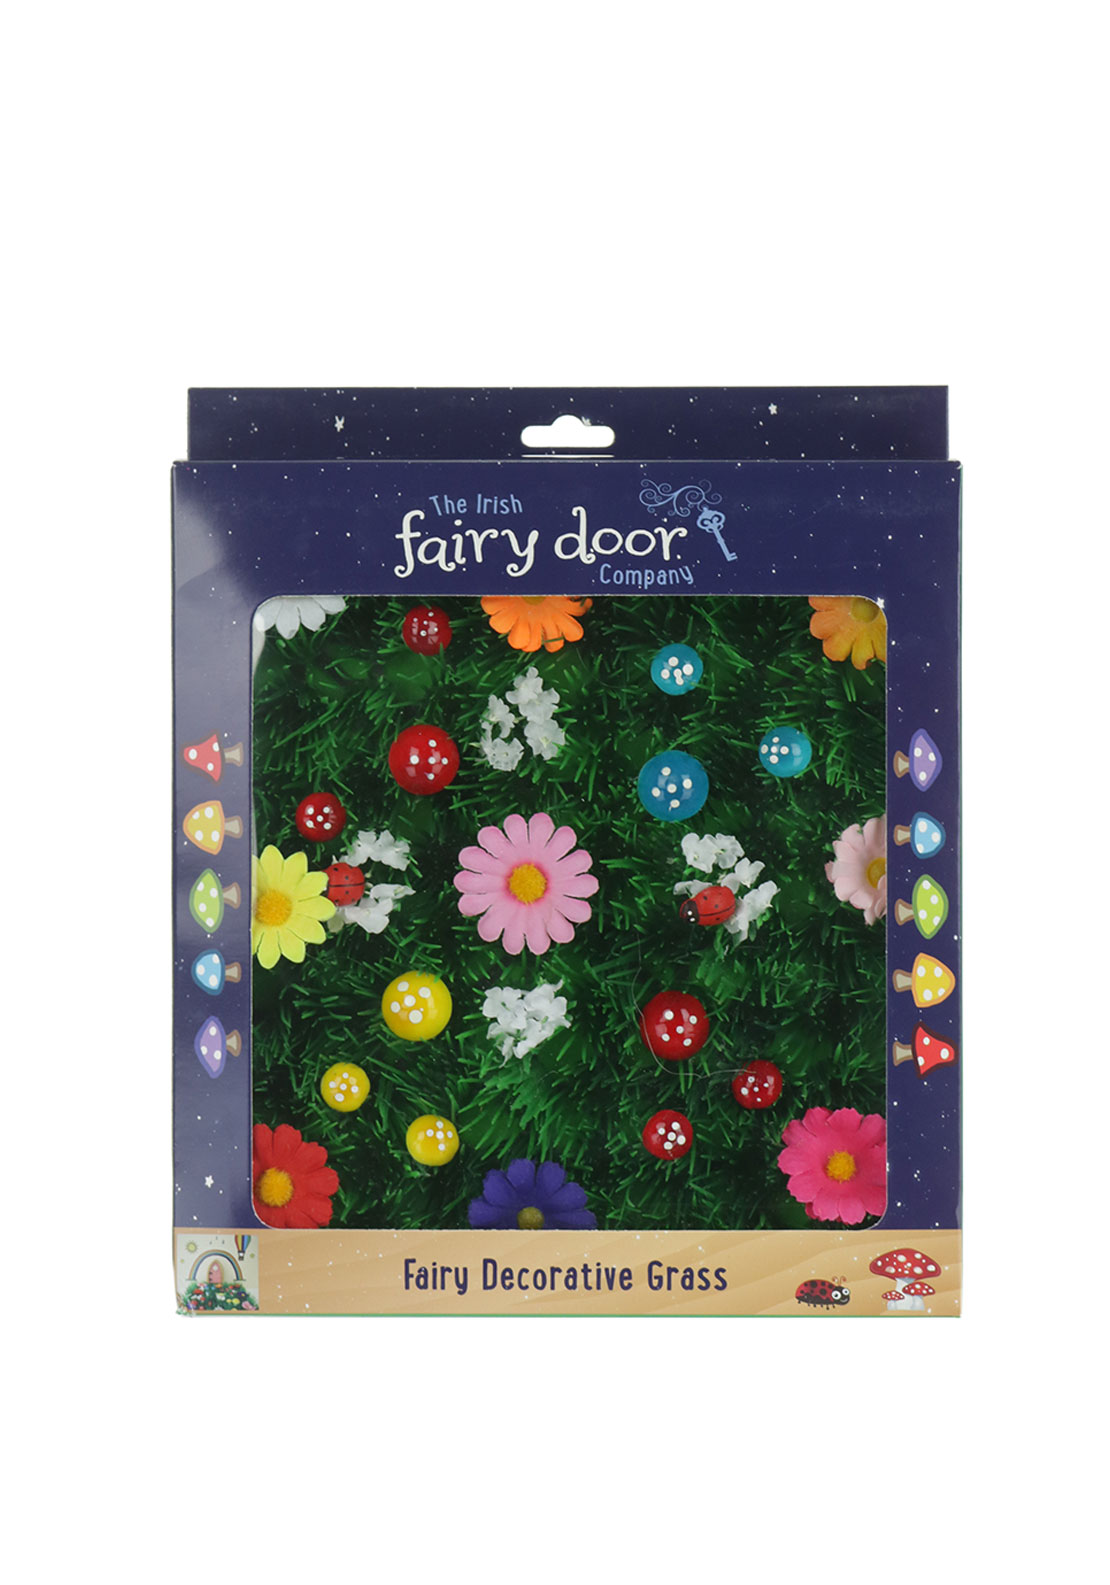 The Irish Fairy Door Company Decorative Fairy Grass